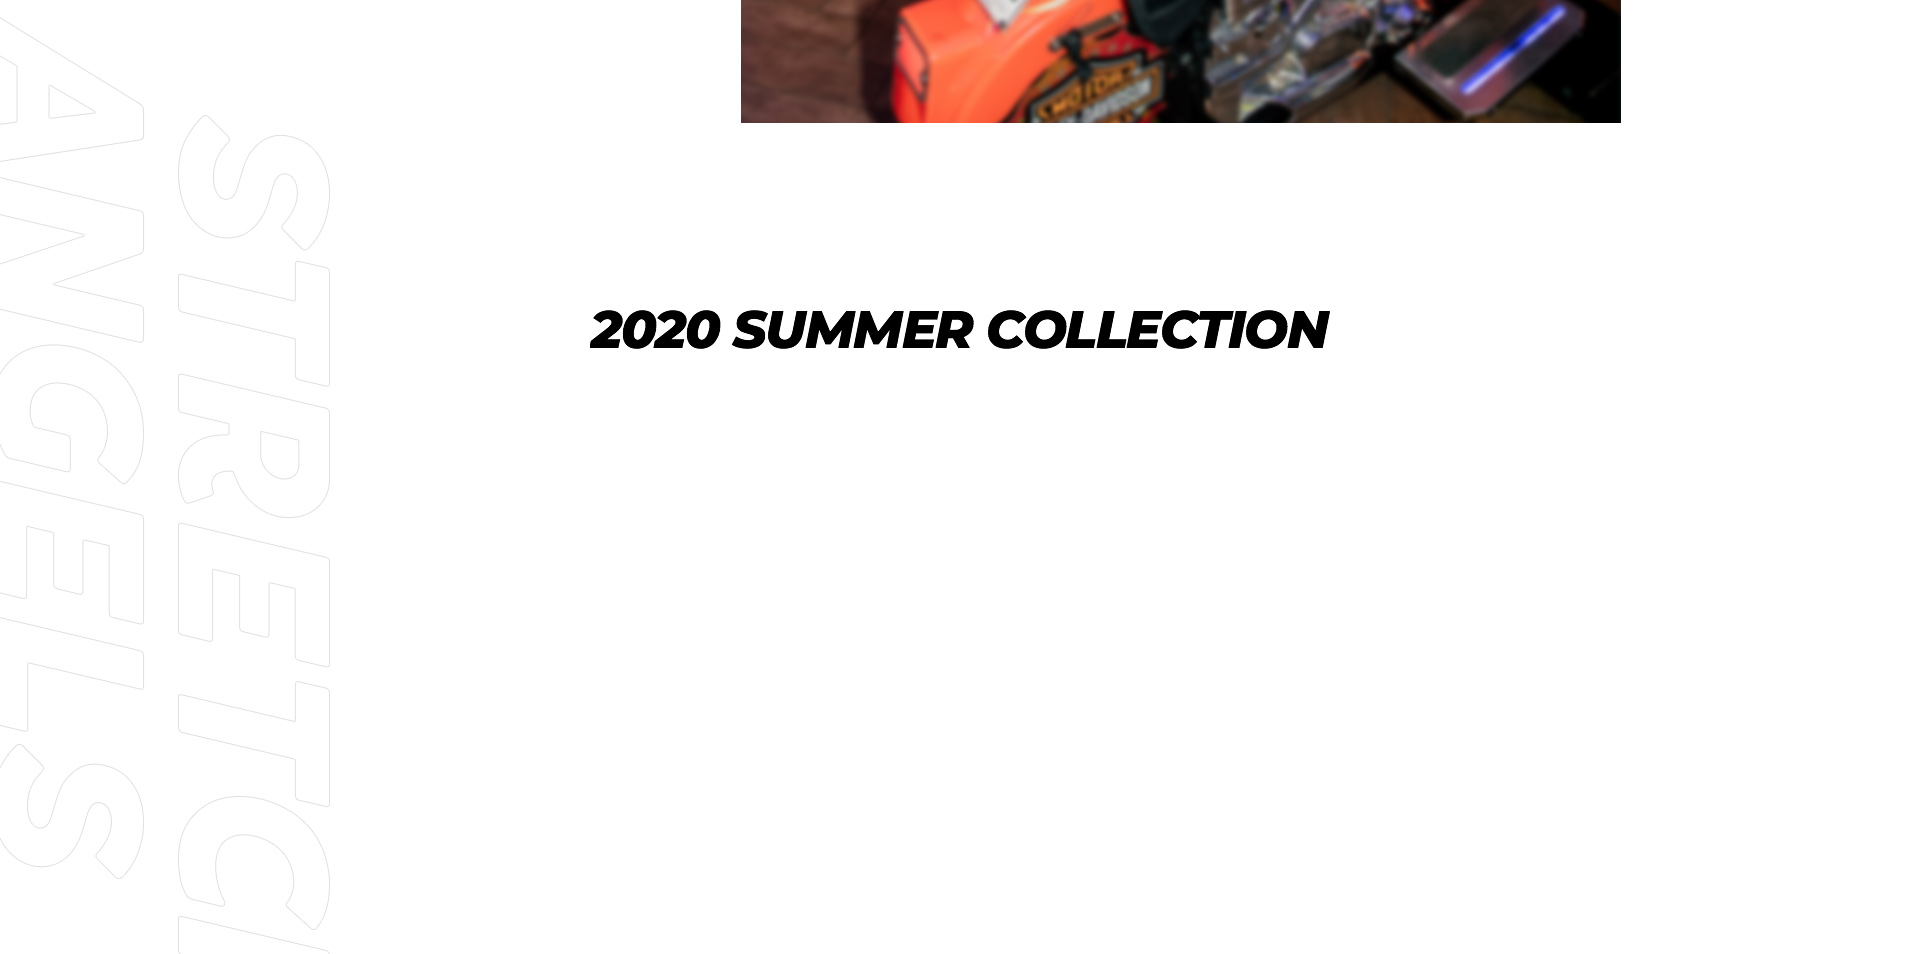 STRETCH ANGELS 2020 SUMMER COLLECTION